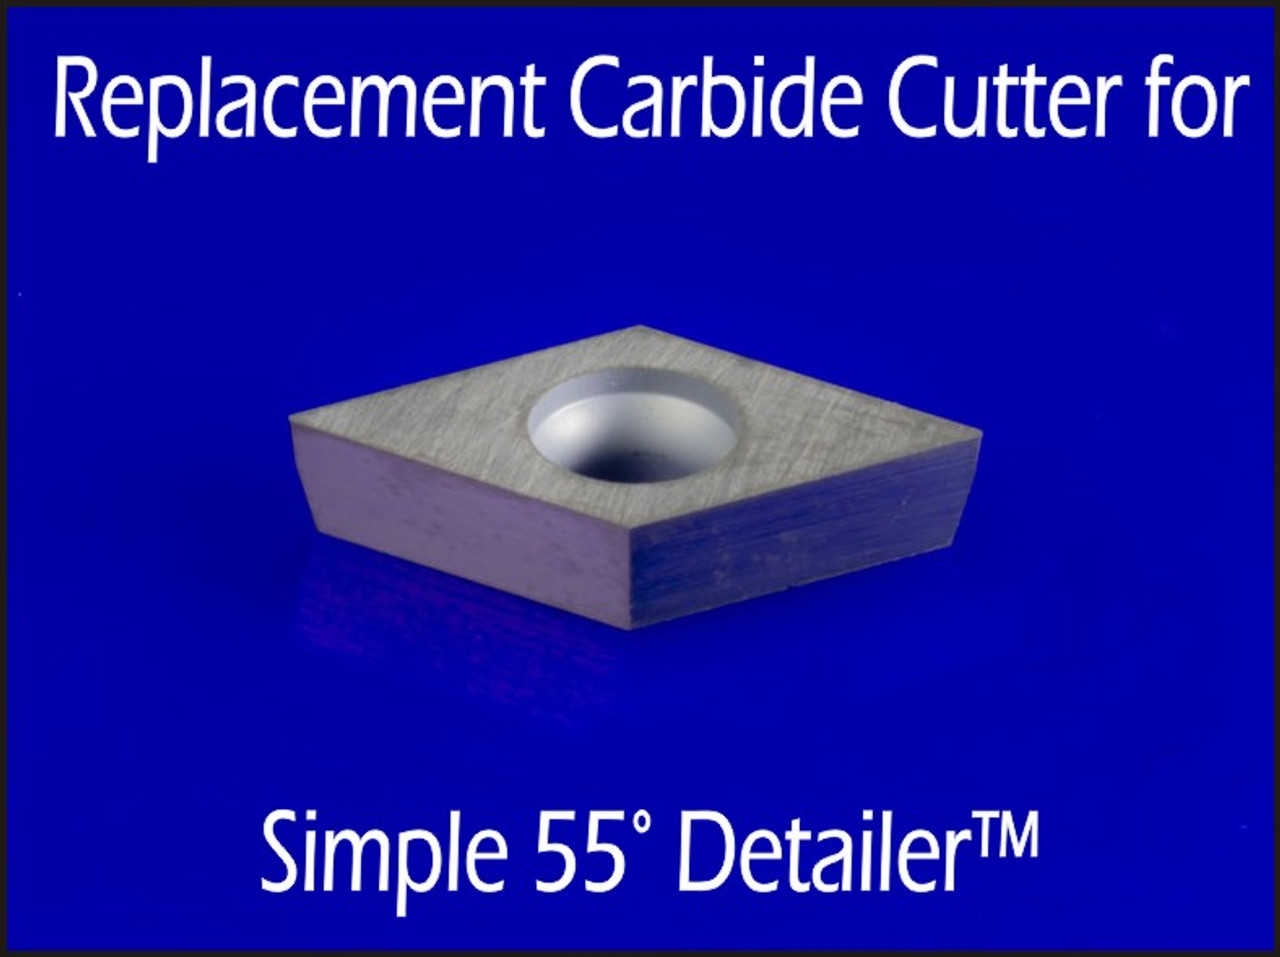 Fits both the full and mid size Simple 55 Degree Detailer.